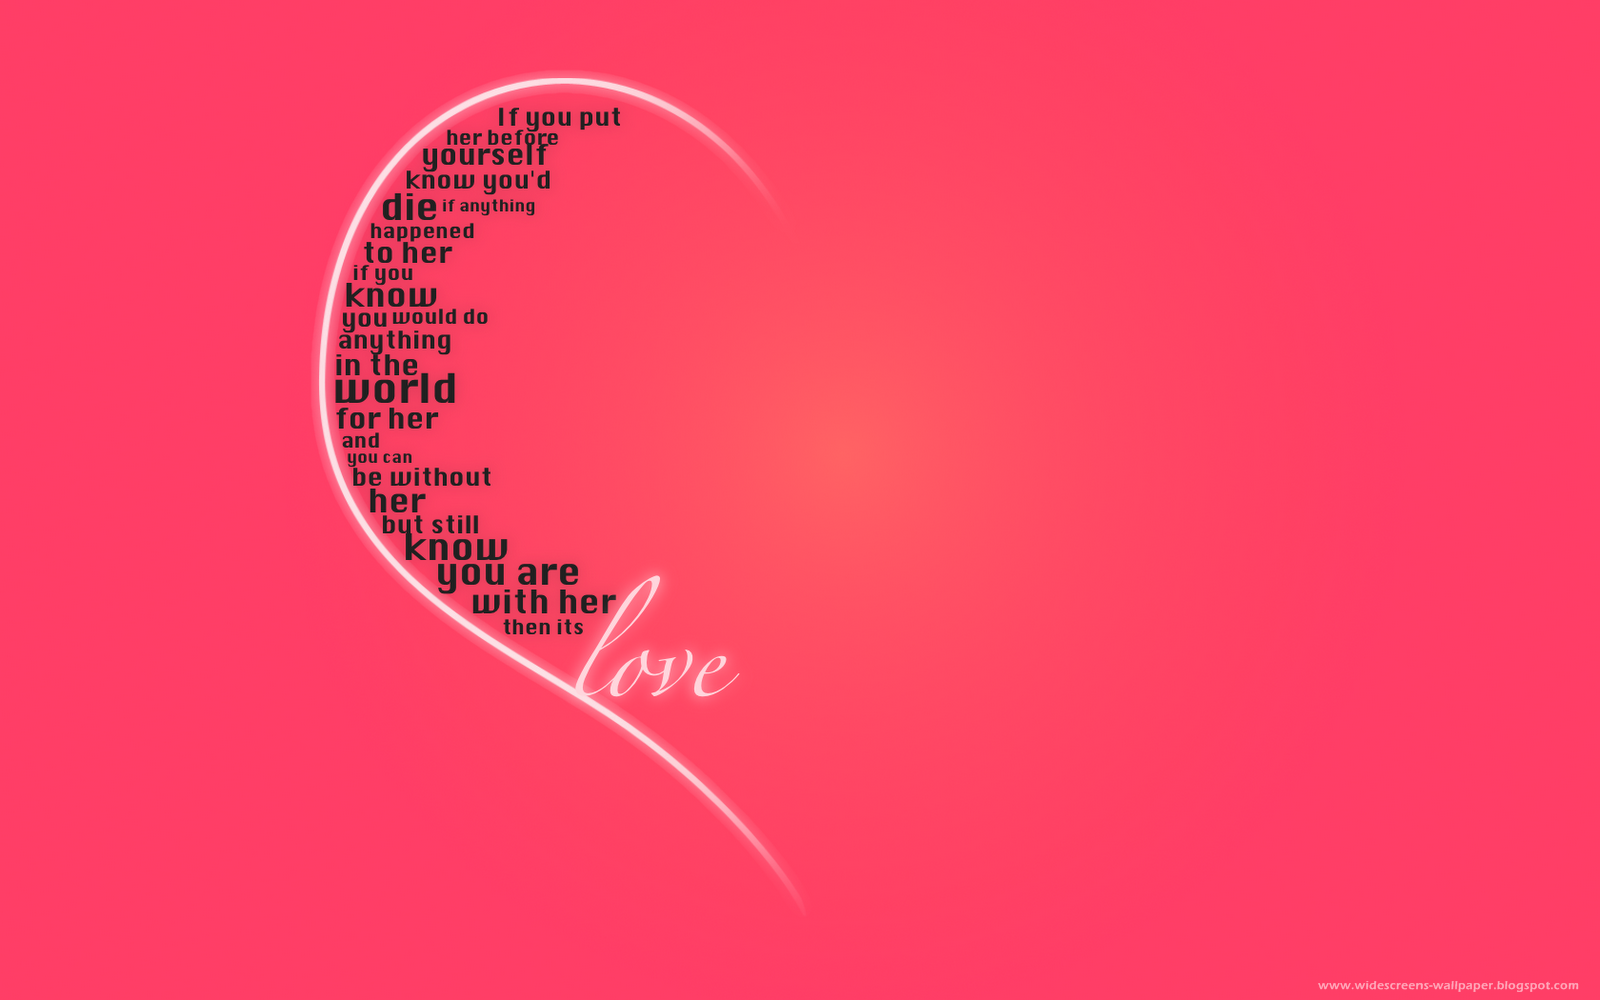 My Love Quotes Wallpaper : Wallpaper collection For Your computer and Mobile Phones ...